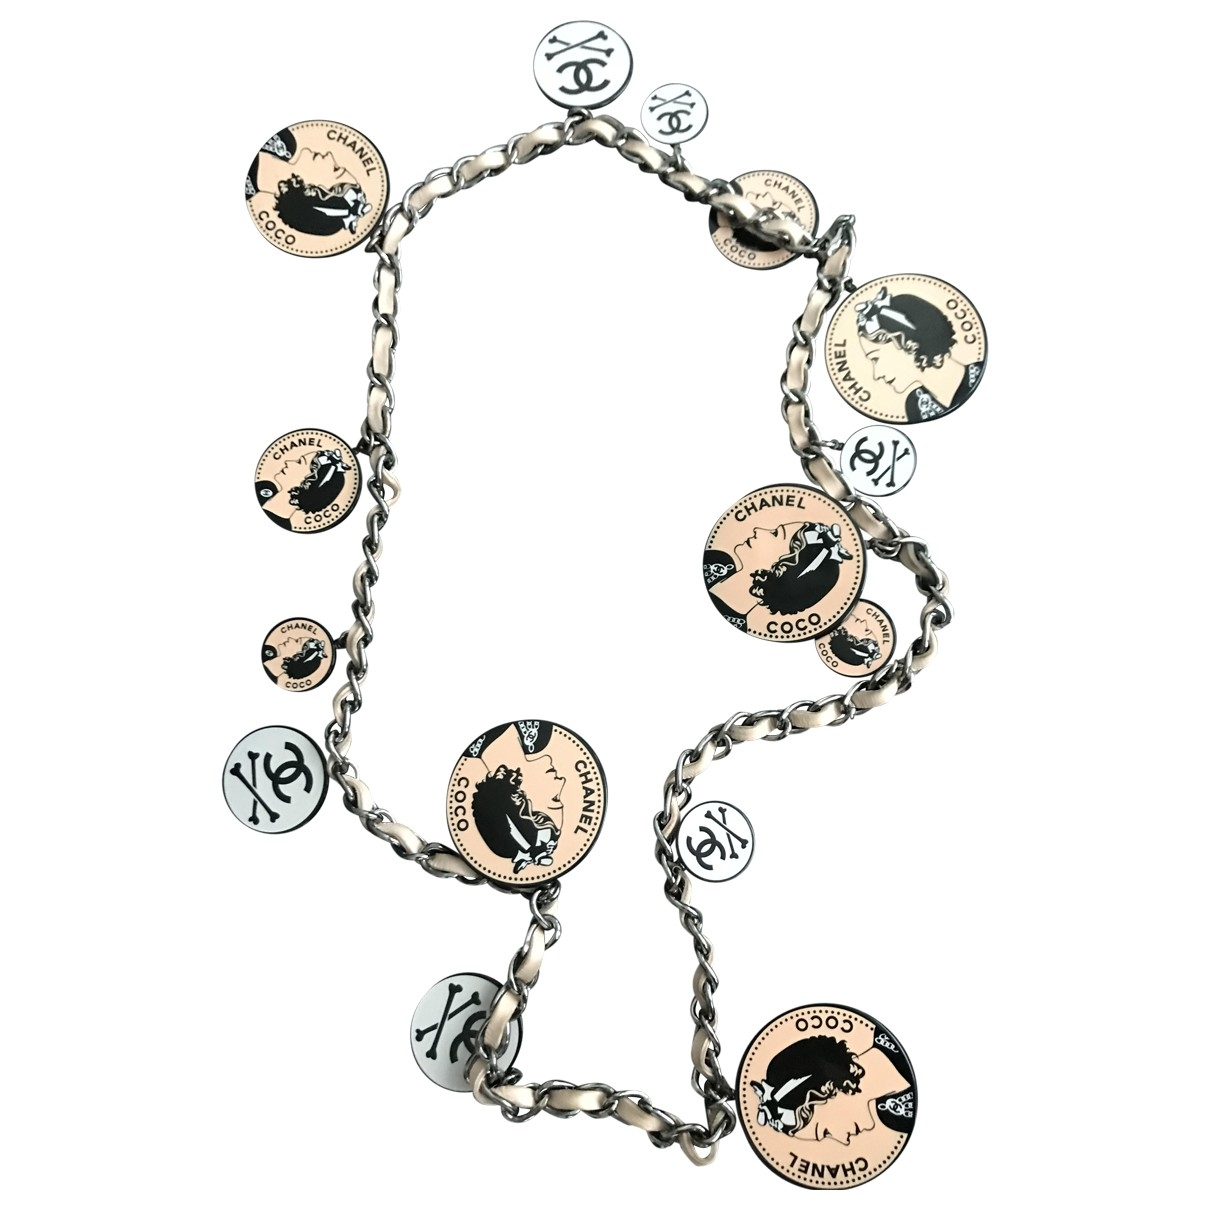 Chanel - Collier CHANEL pour femme en metal - rose